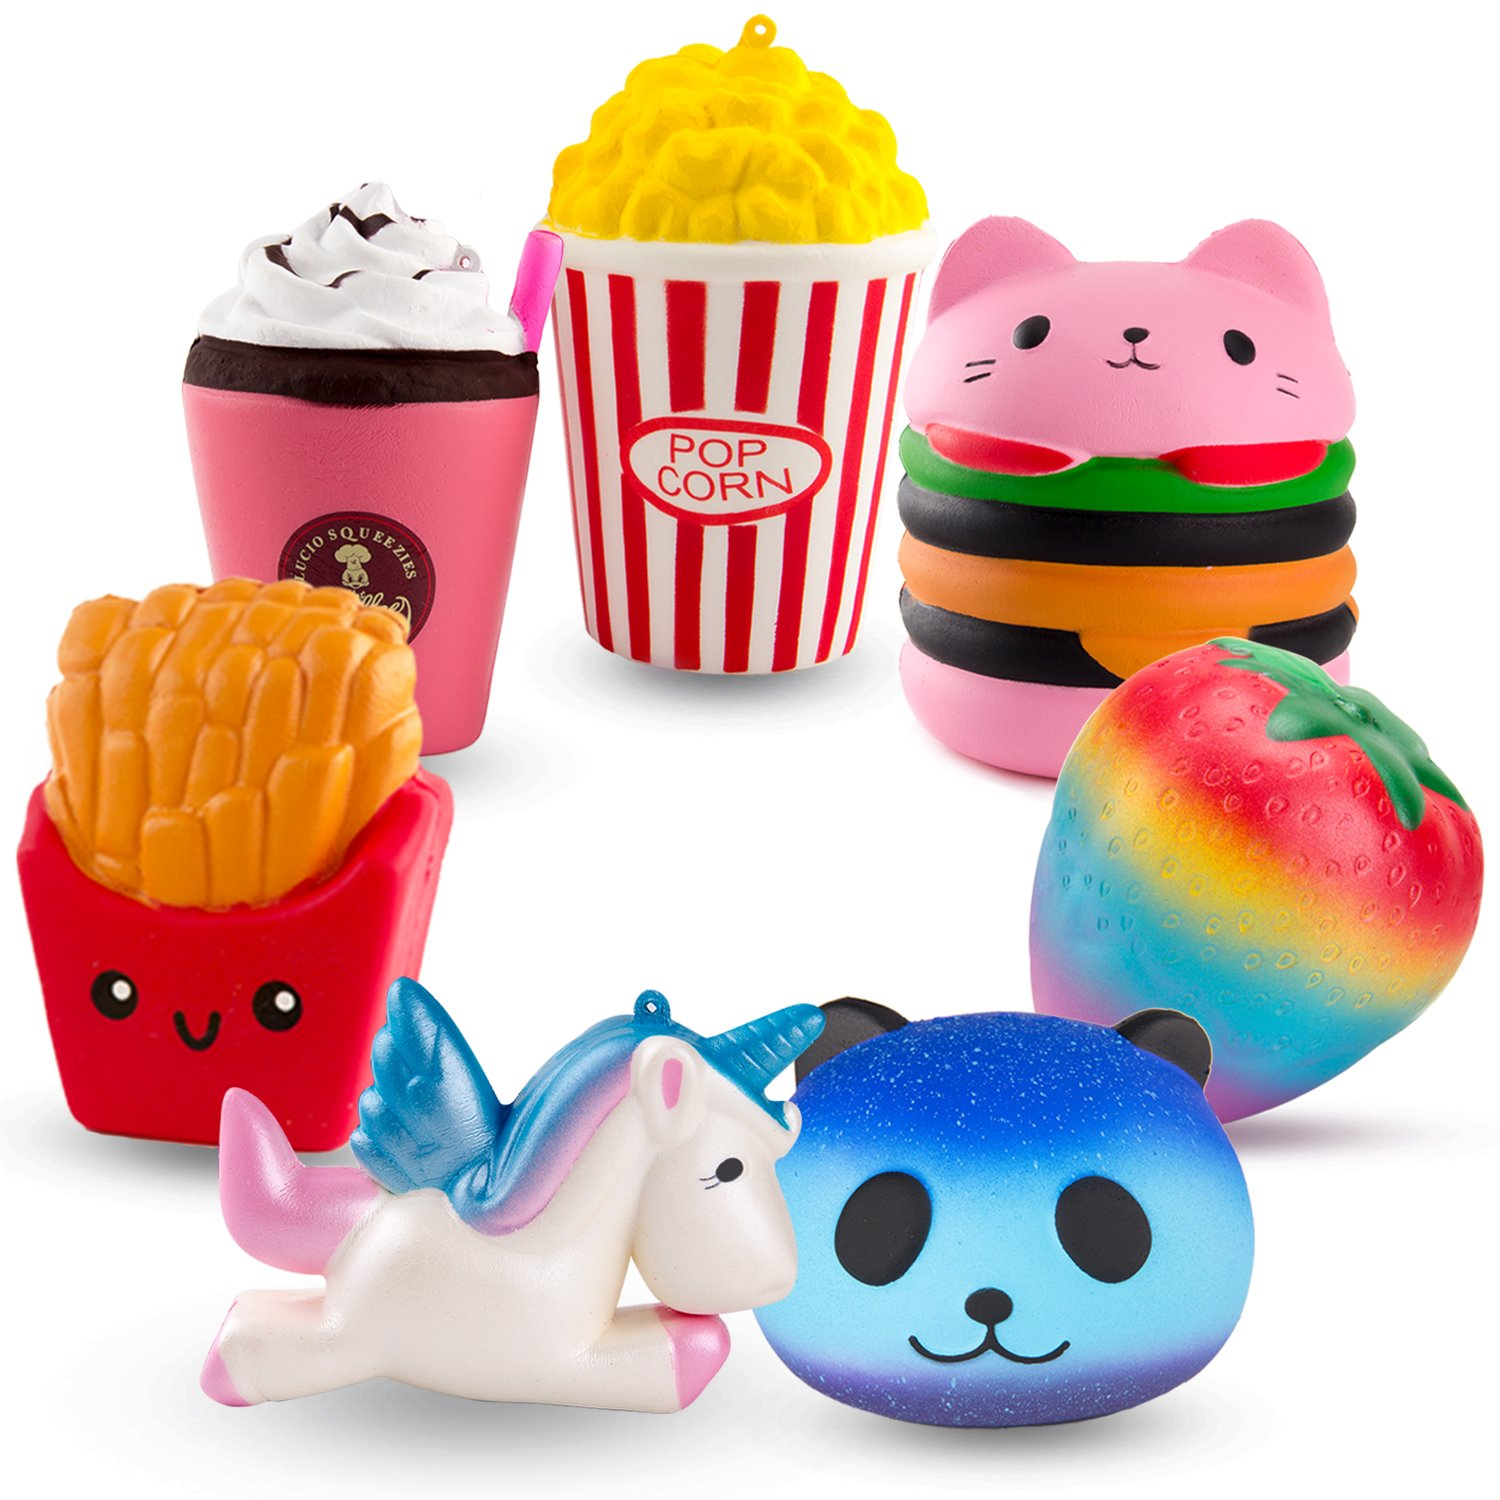 R.HORSE Cute Unicorn, Hamburger, Popcorn Set Kawaii Cream Scented Squishies Slow Rising Decompression Squeeze Toys for Kids or Stress Relief Toy Hop Props, Decorative Props Large (7 Pack)